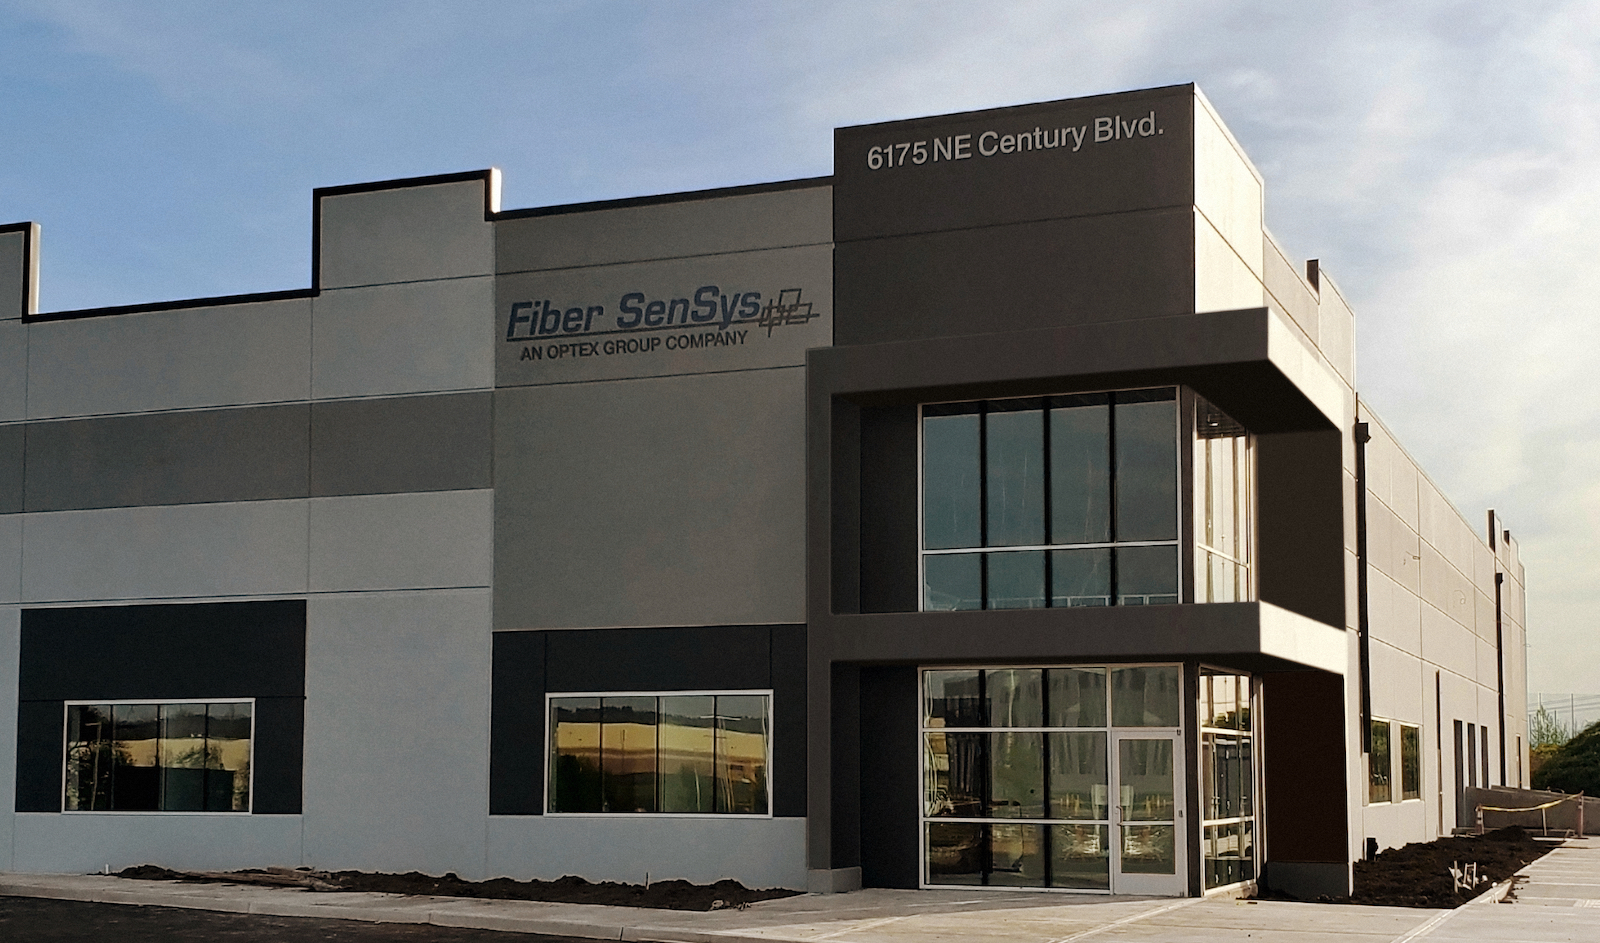 Fiber SenSys, Inc. moves into new world headquarters